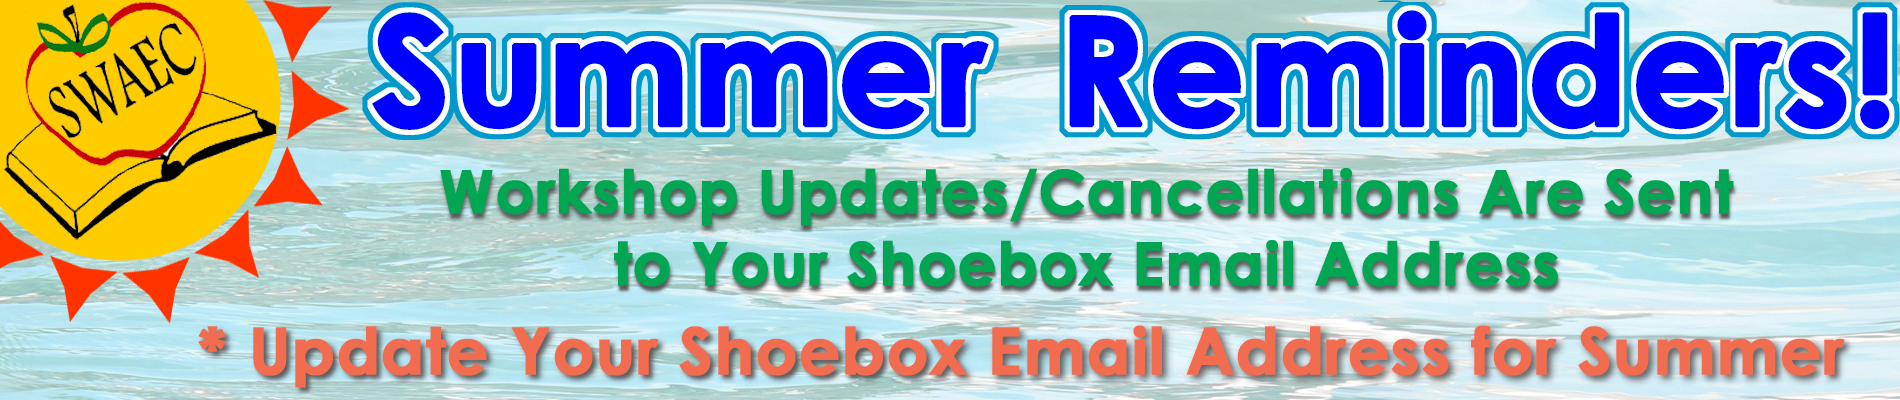 Please update your shoebox email address for the summer